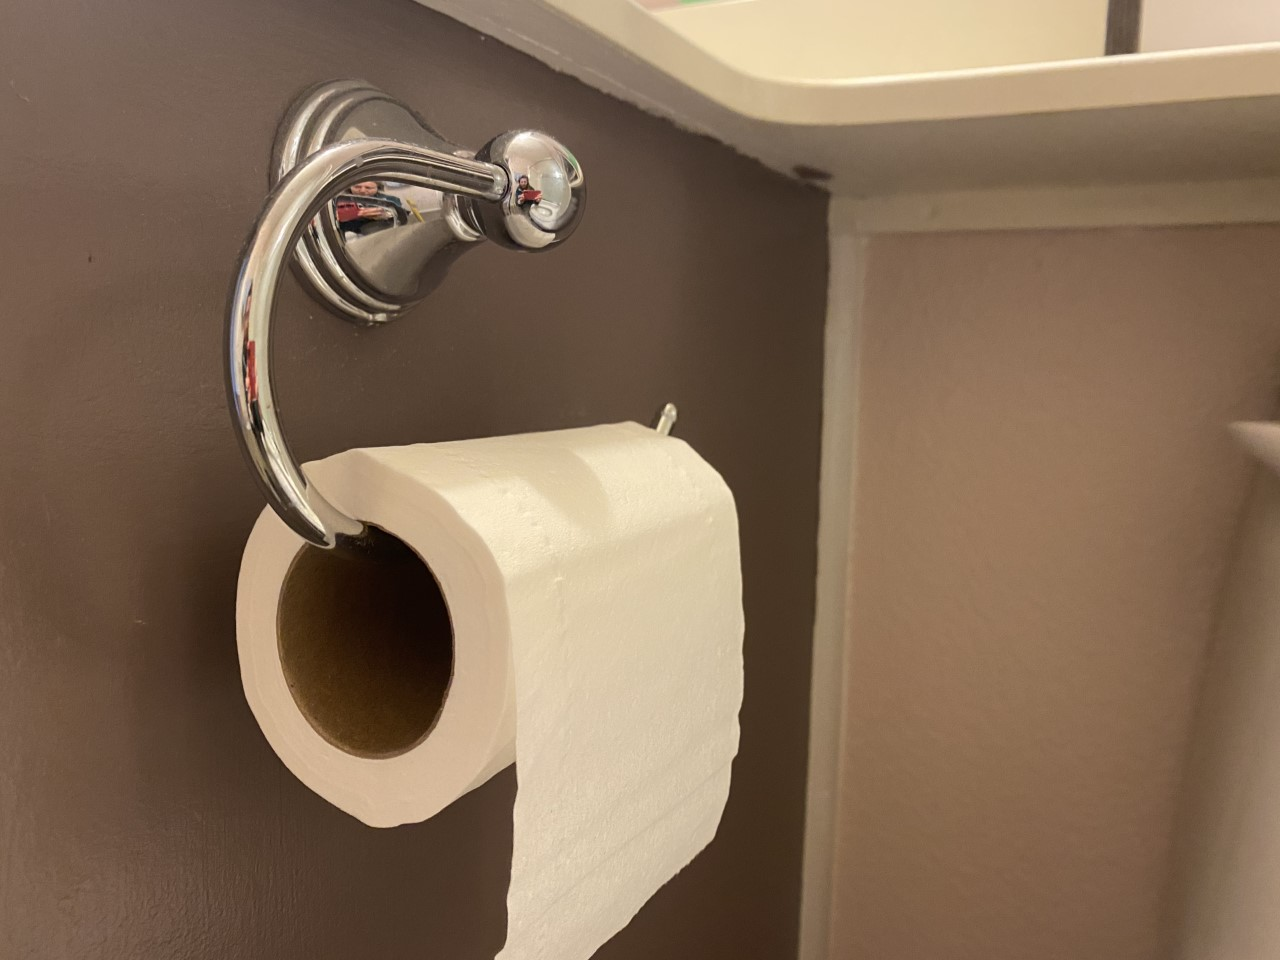 A roll of toilet paper hangs on the bathroom holder.